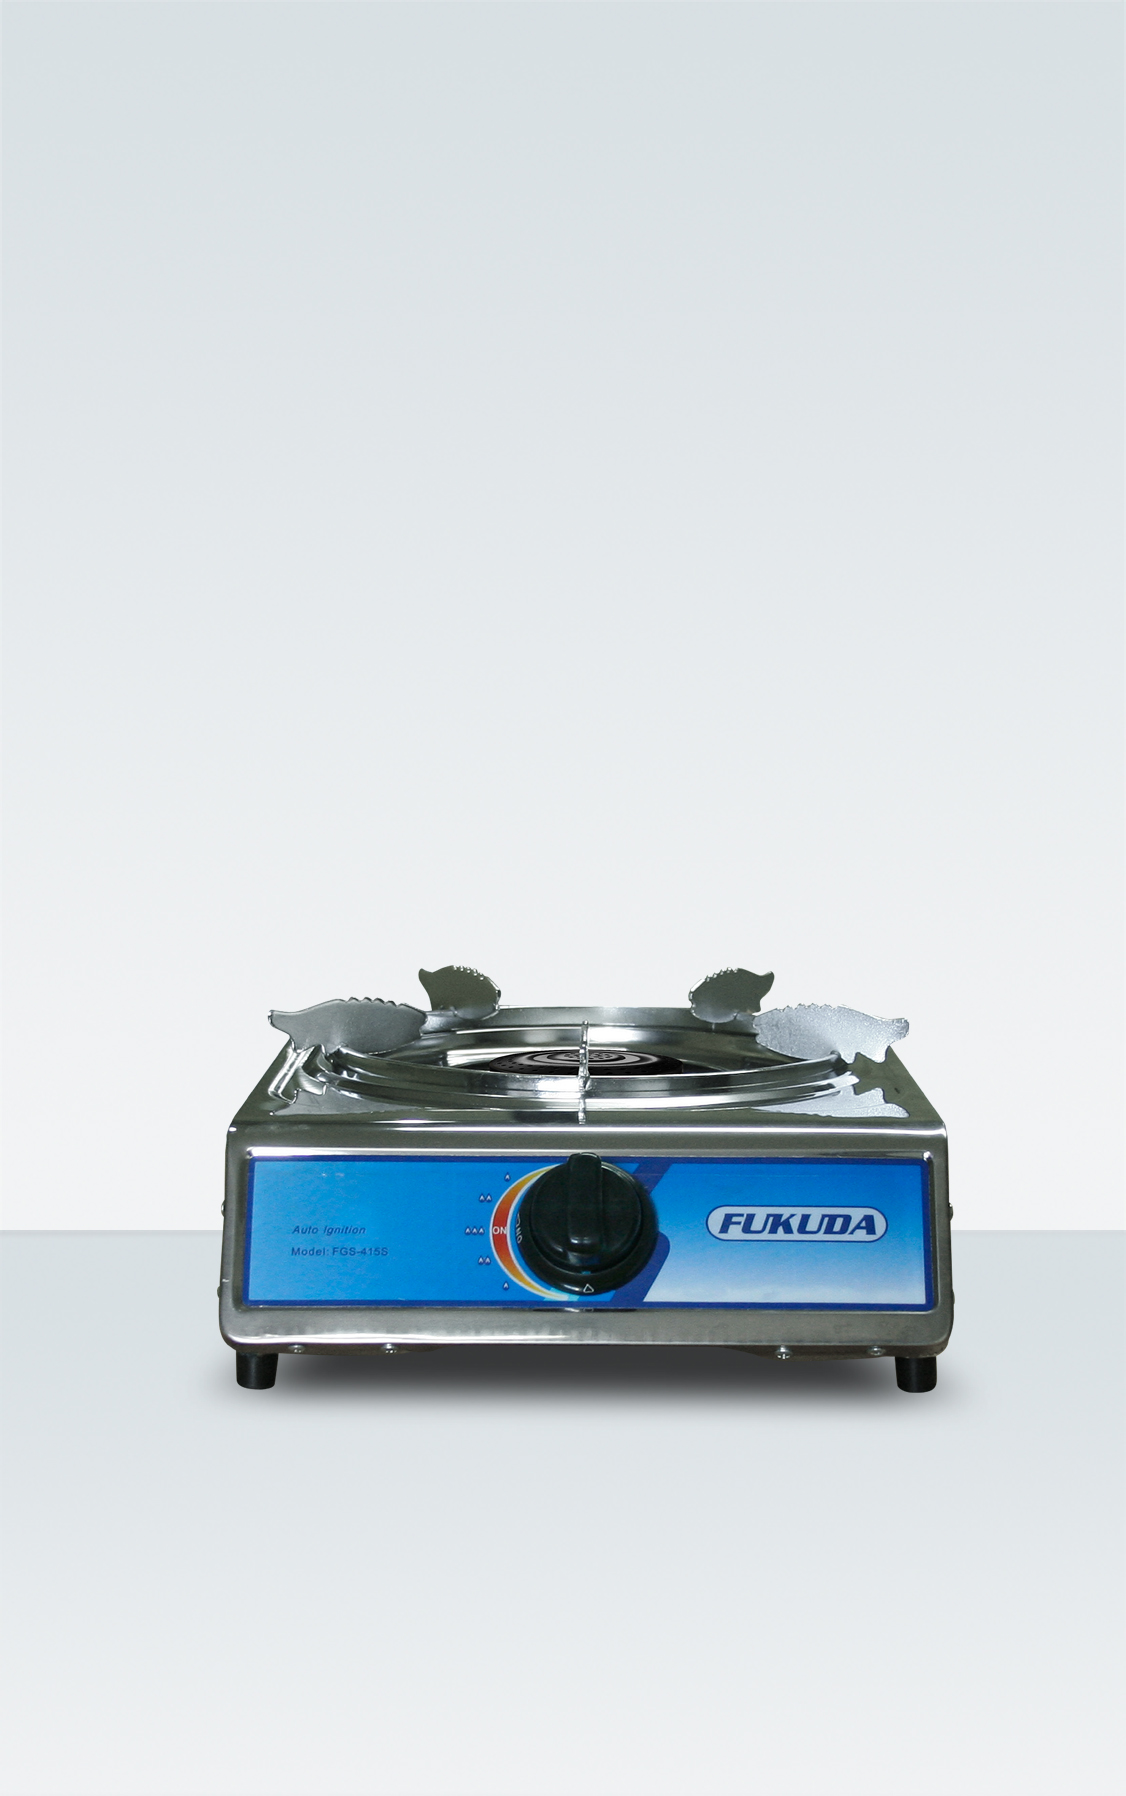 STAINLESS SINGLE BURNER GAS STOVE